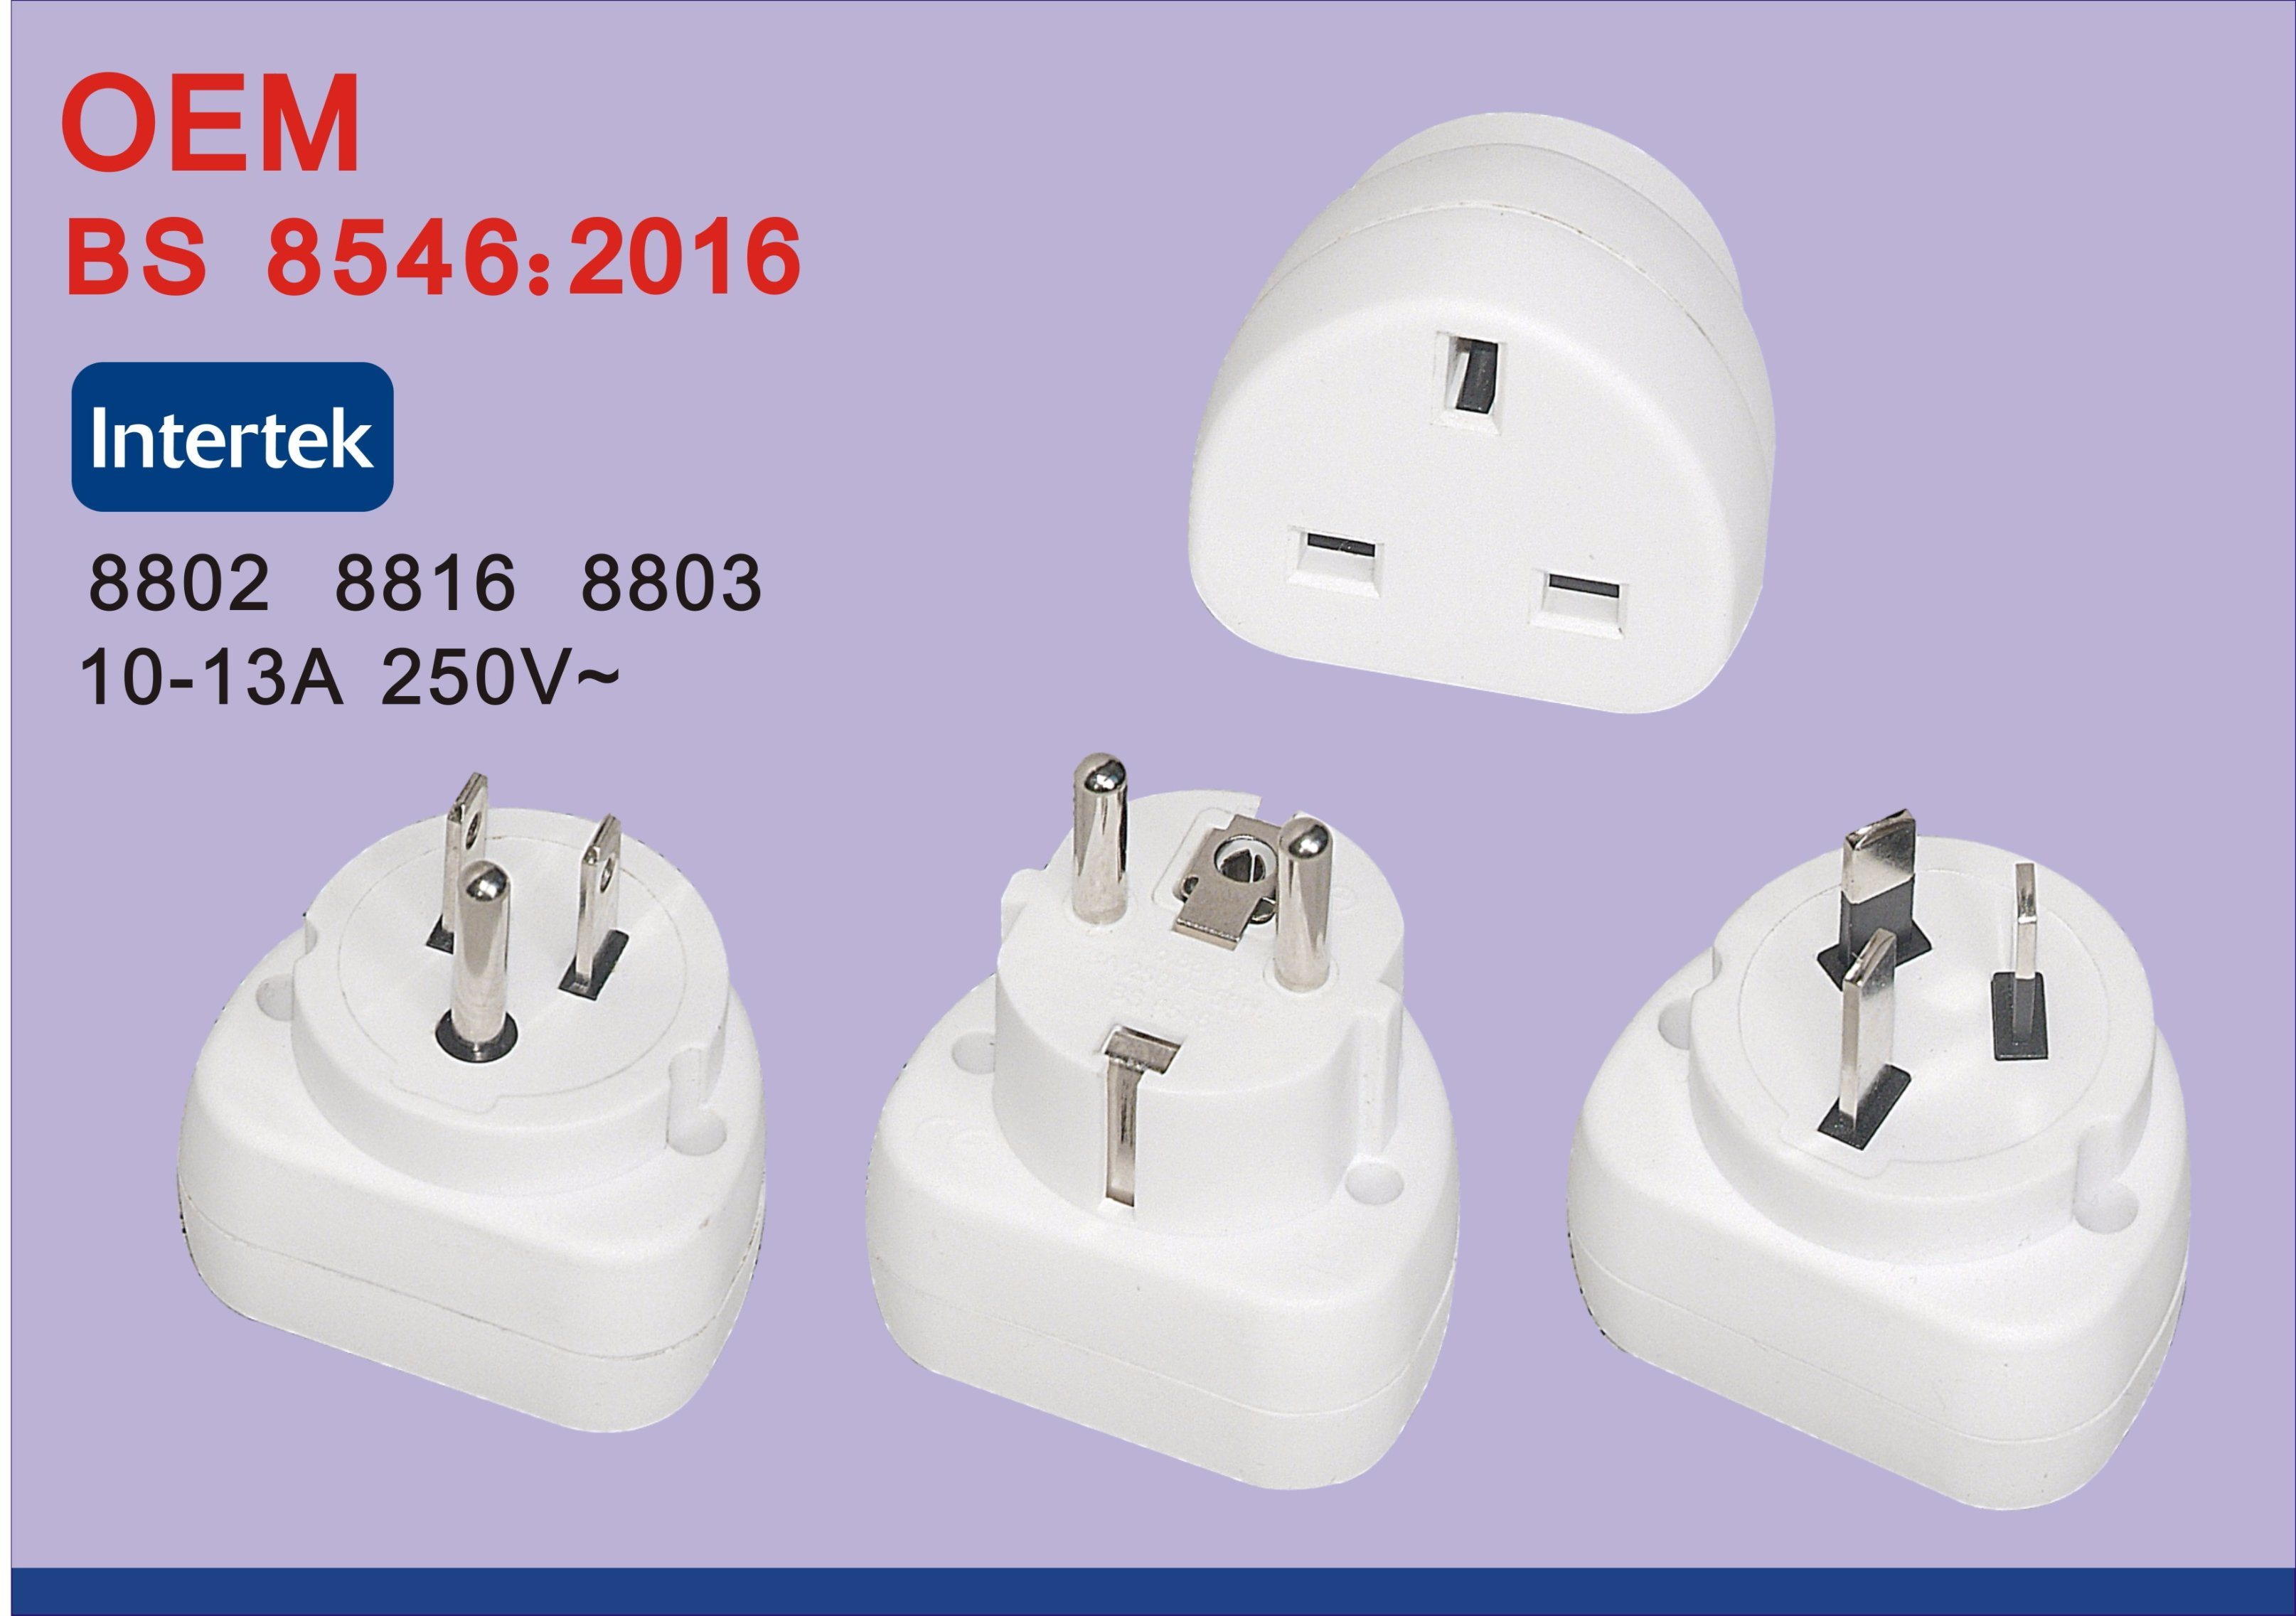 Travel Adapter Eu To Uk Hot Item Universal Travel Adapter Us Au Eu To Uk Plug Travel Wall Ac Power Adapter 250v